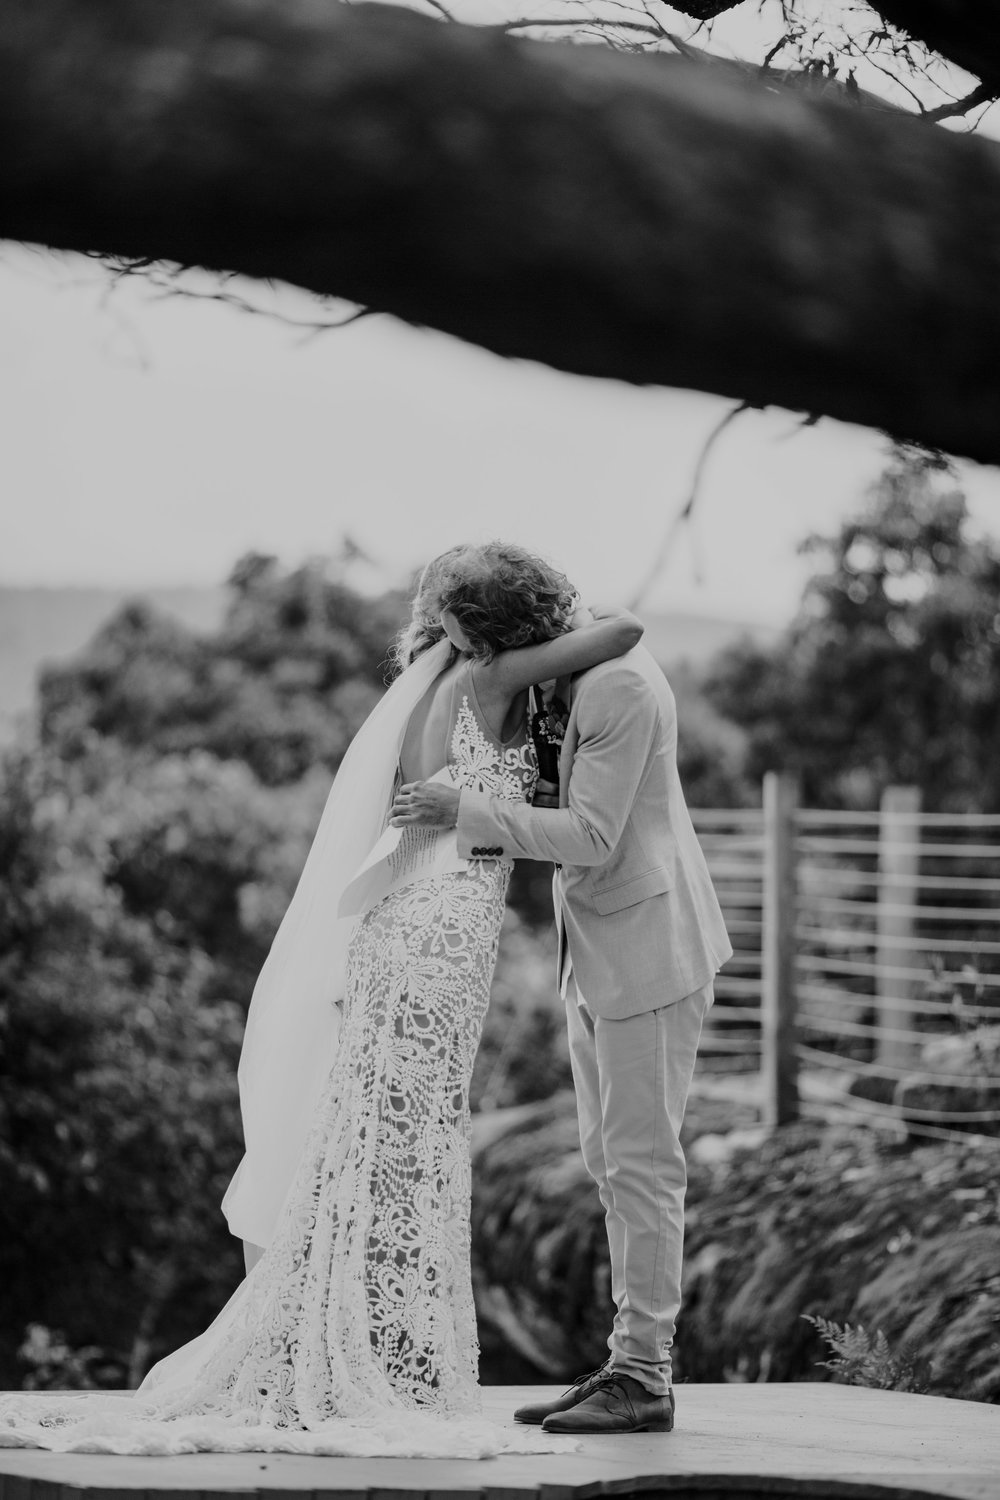 Jesse+Matt+Kangaroo+Valley+Wildwood+Boho+Relaxed+wedding+-113.jpg